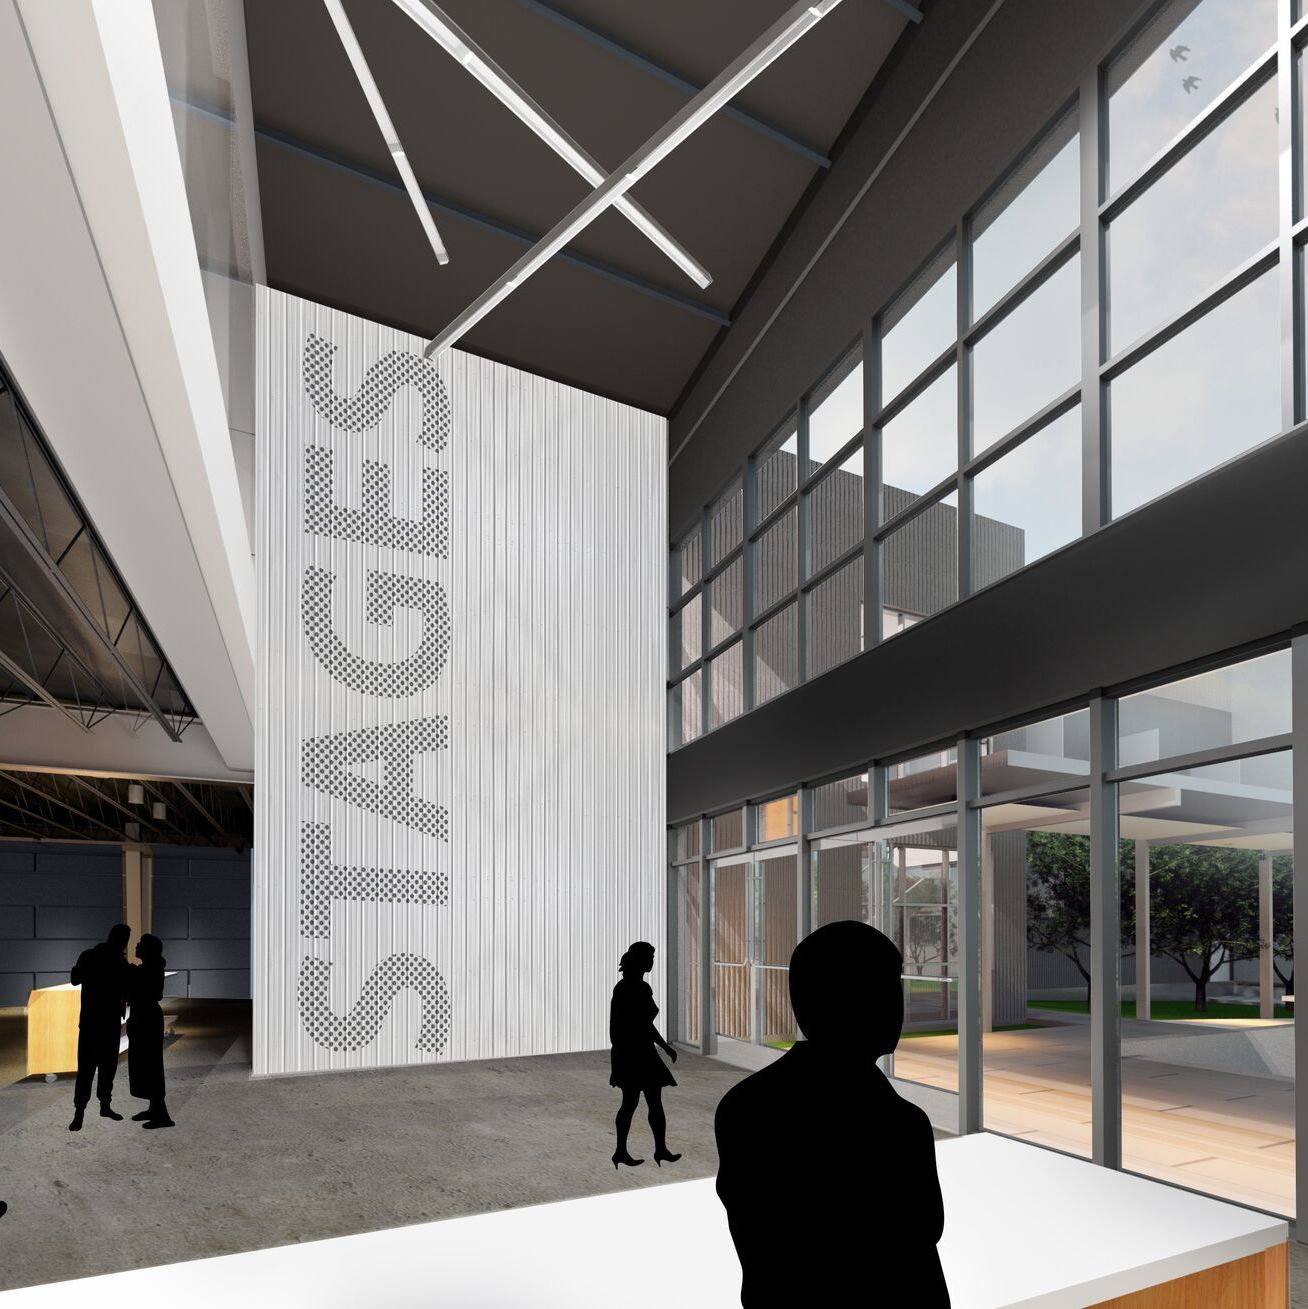 03 stages at the gordy   main entrance rendering preview   courtesy of stages repertory theatre n659gk